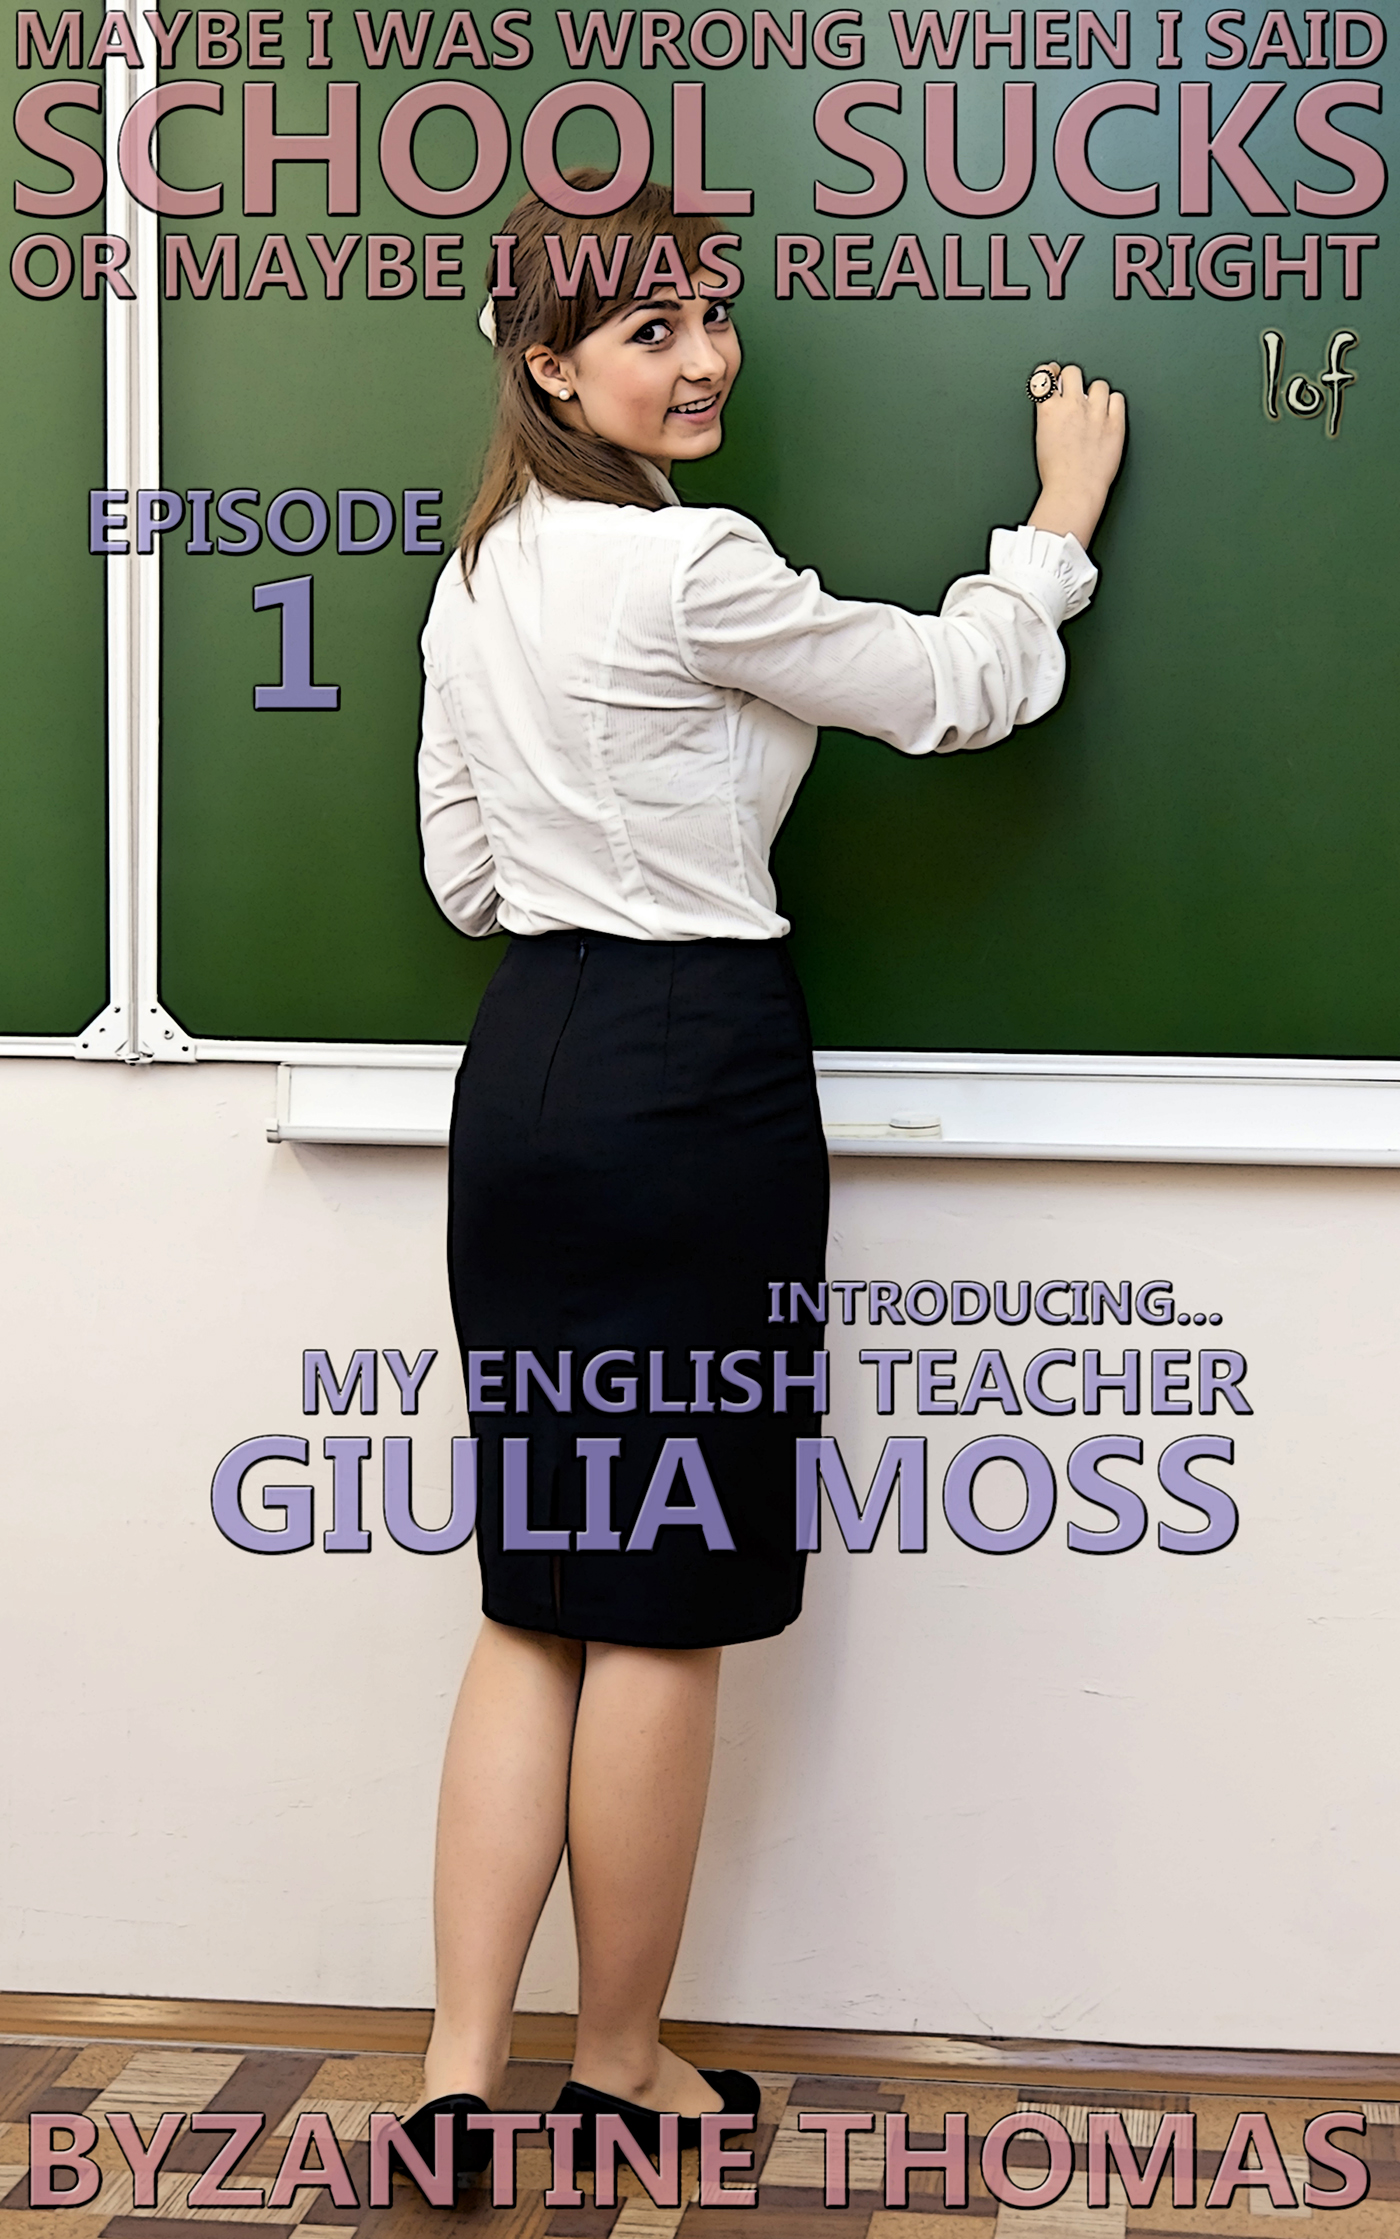 LOF New Release: School Sucks: Episode 1 (Introducing My English Teacher Giulia Moss)